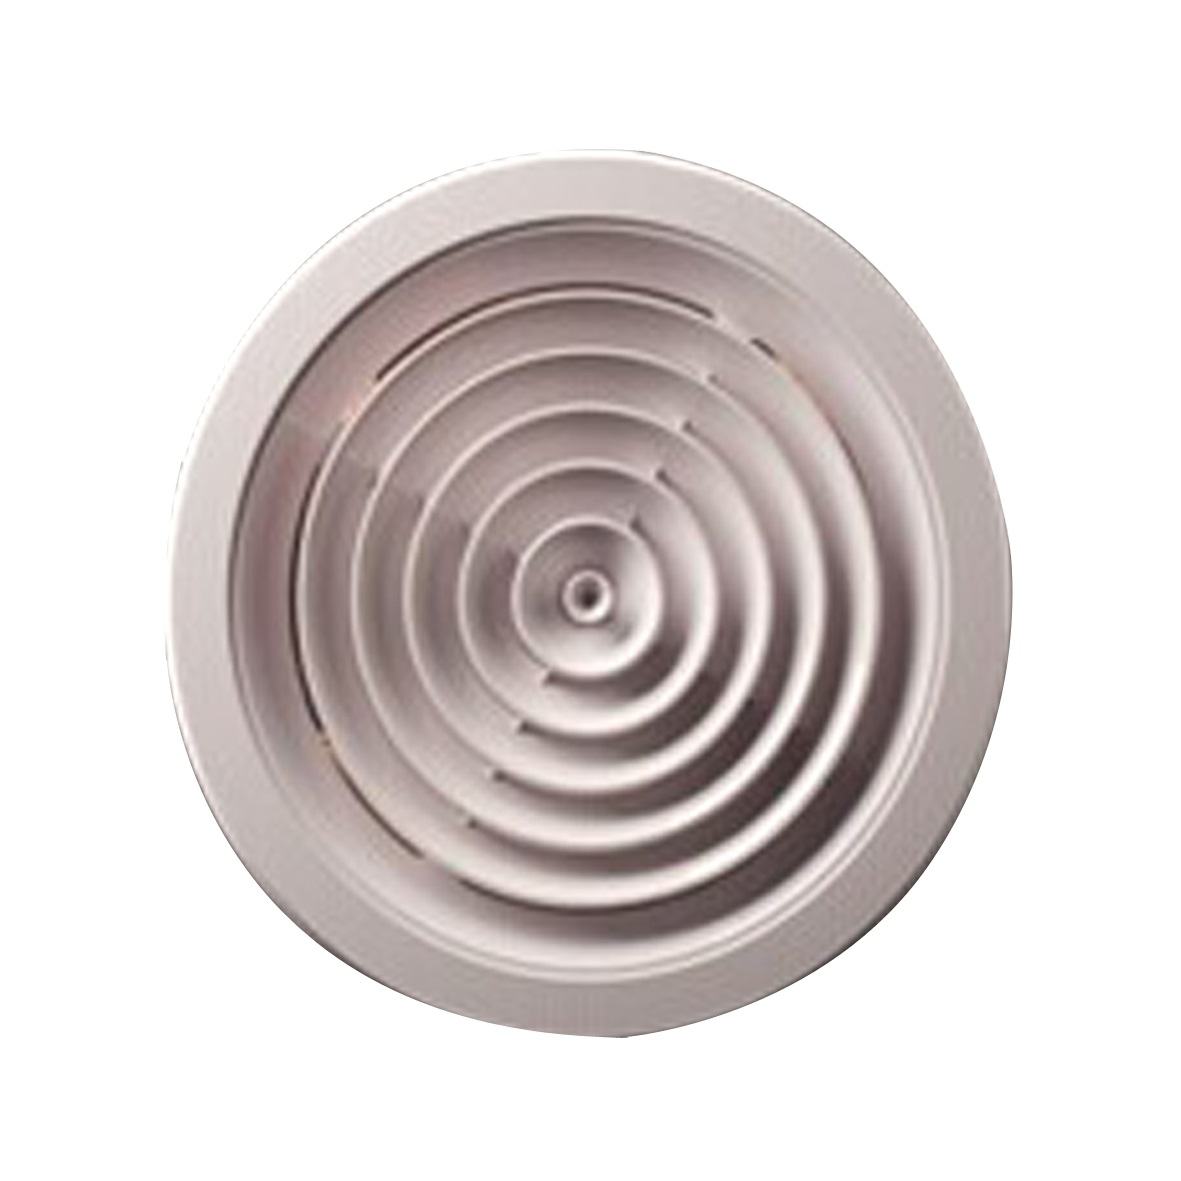 MULTIJET CEILING DIFFUSER grille diffuser Starget Supply:admin@  #735858